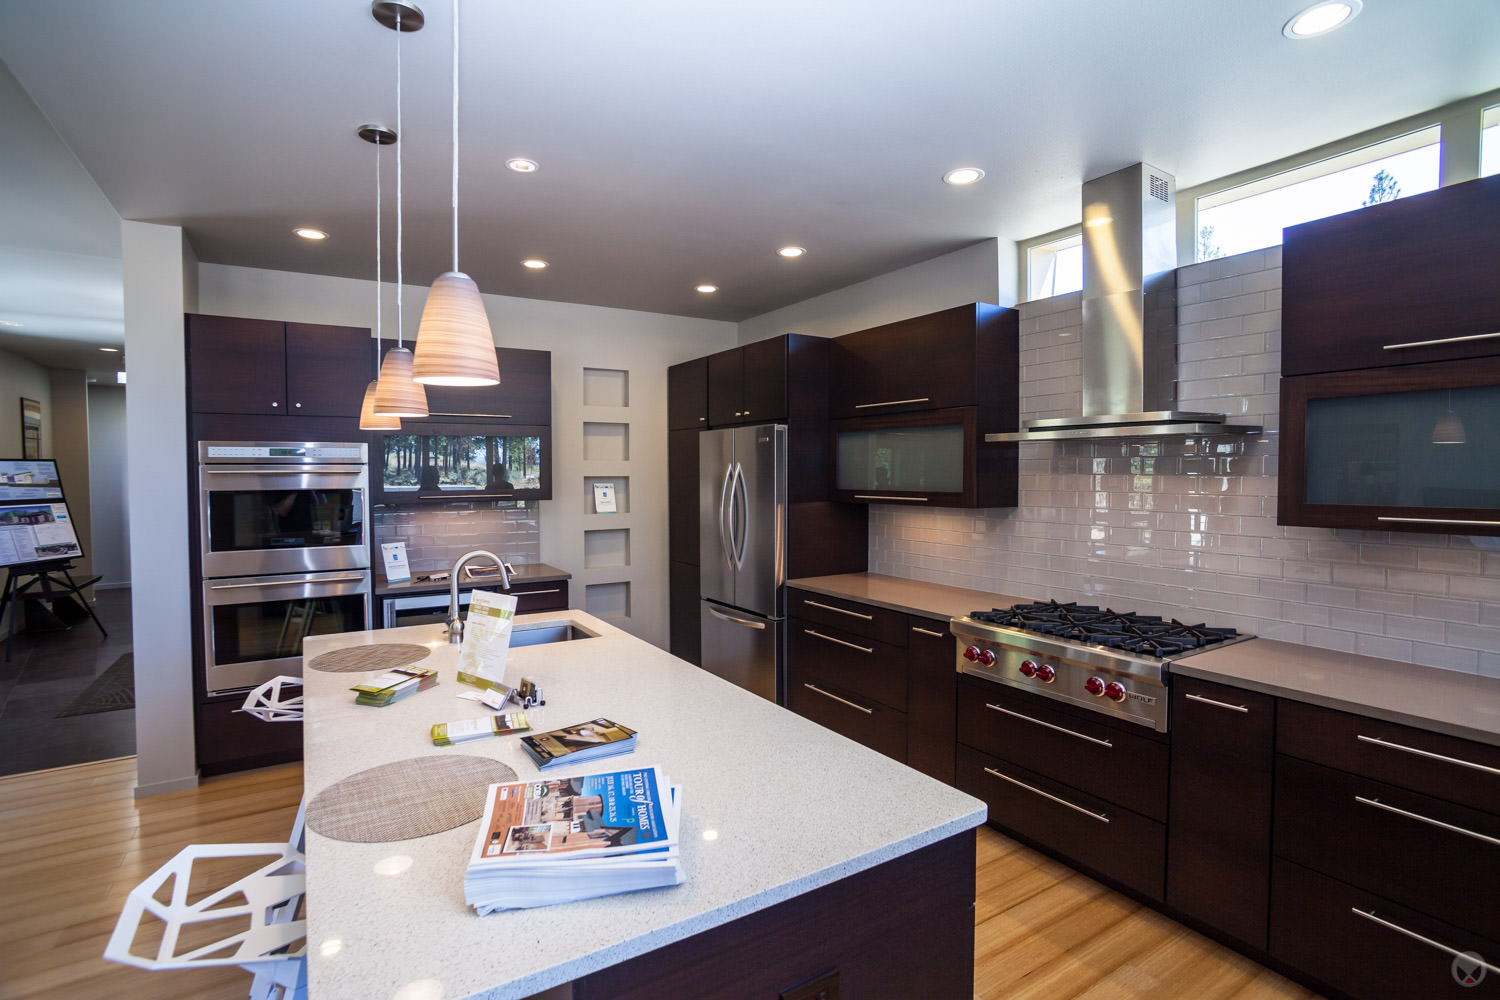 A backsplash of subway tiles.Also note: pendant light fixtures and stainless steel appliances.